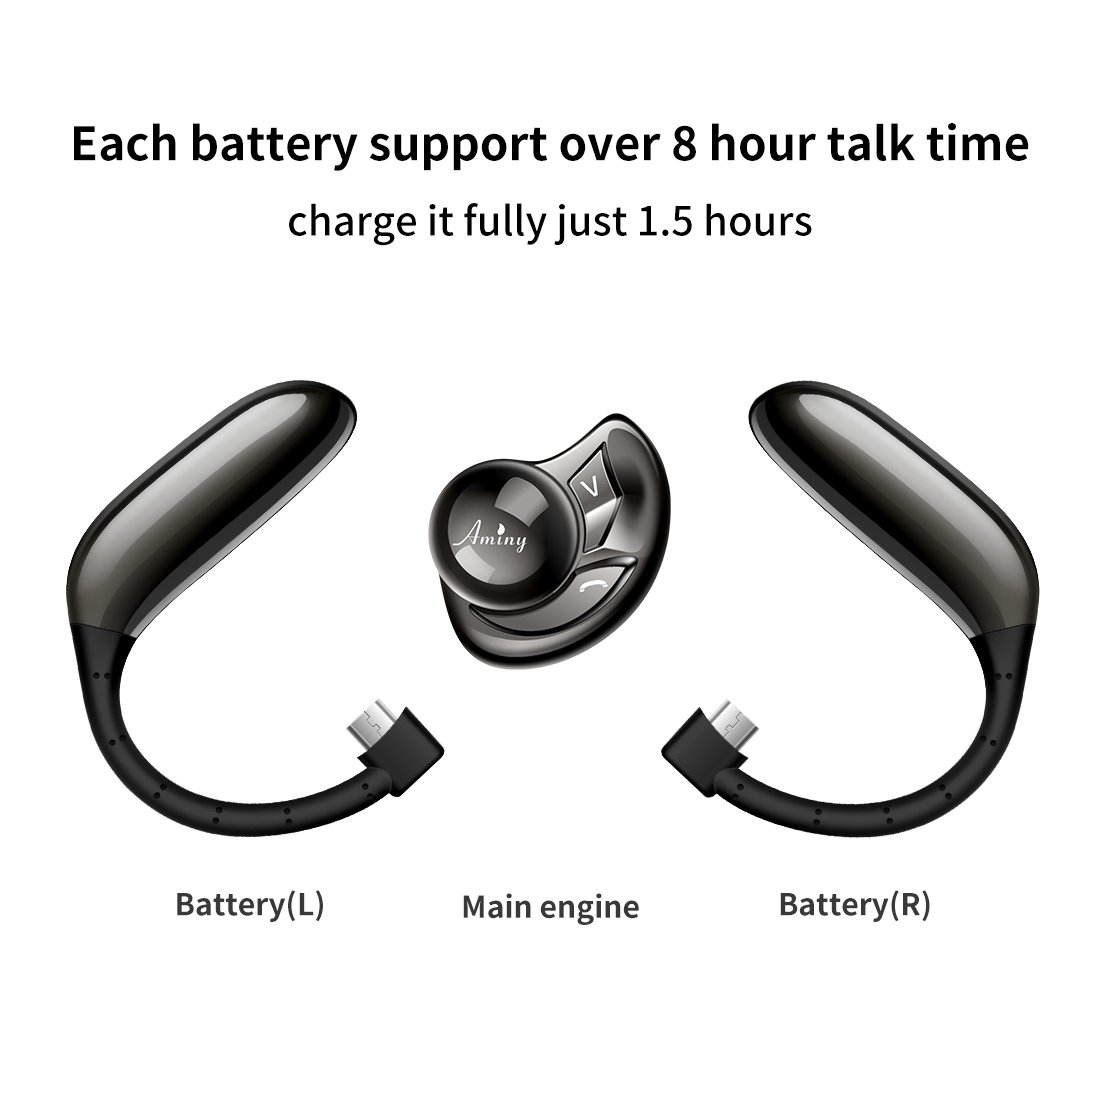 Aminy Bluetooth Headset with 16-Hr Playing Time V4.2 Car Bluetooth Headset Wireless Earphones with Mic Cell Phone noise cancelling Bluetooth Earpiece for iPhone Samsung Android (Updated Version) by Aminy (Image #4)